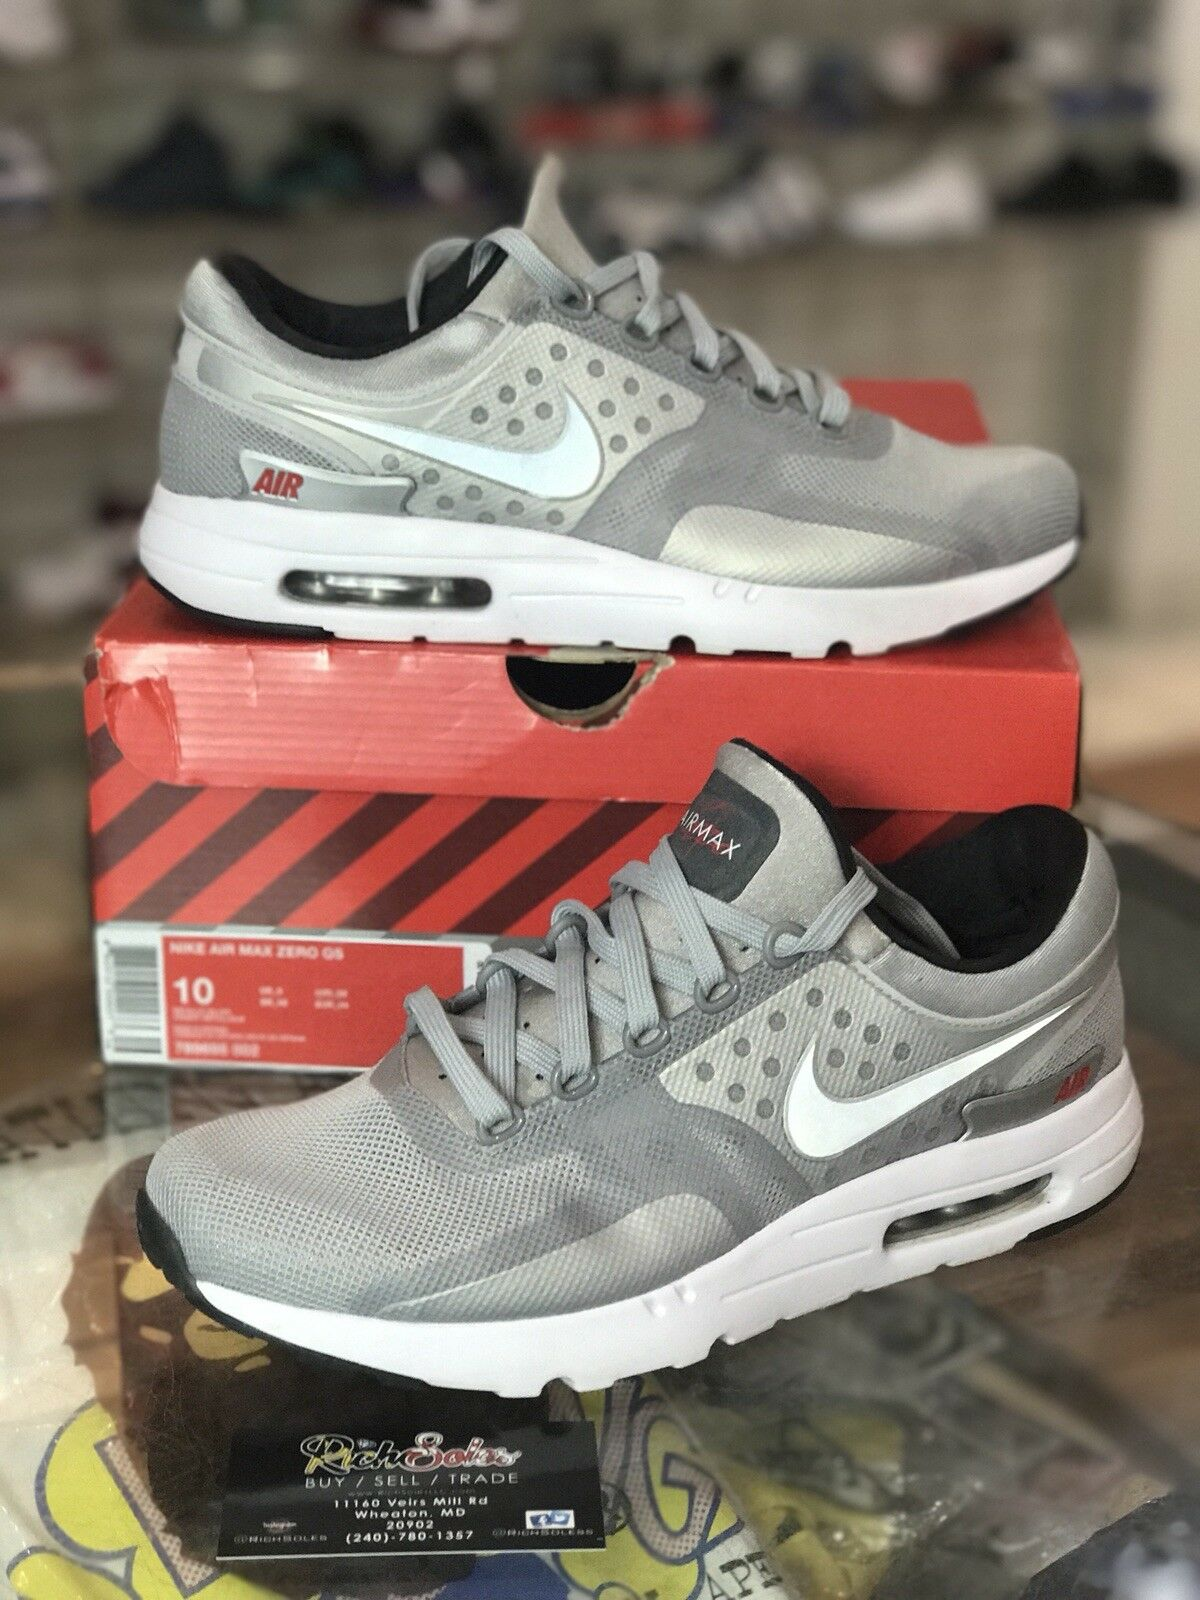 Nike Air Max Cool Zero QS Men's Shoes Cool Max Grey/DK Grey/Wolf Grey 789695-003 Size 10 a8f0a9